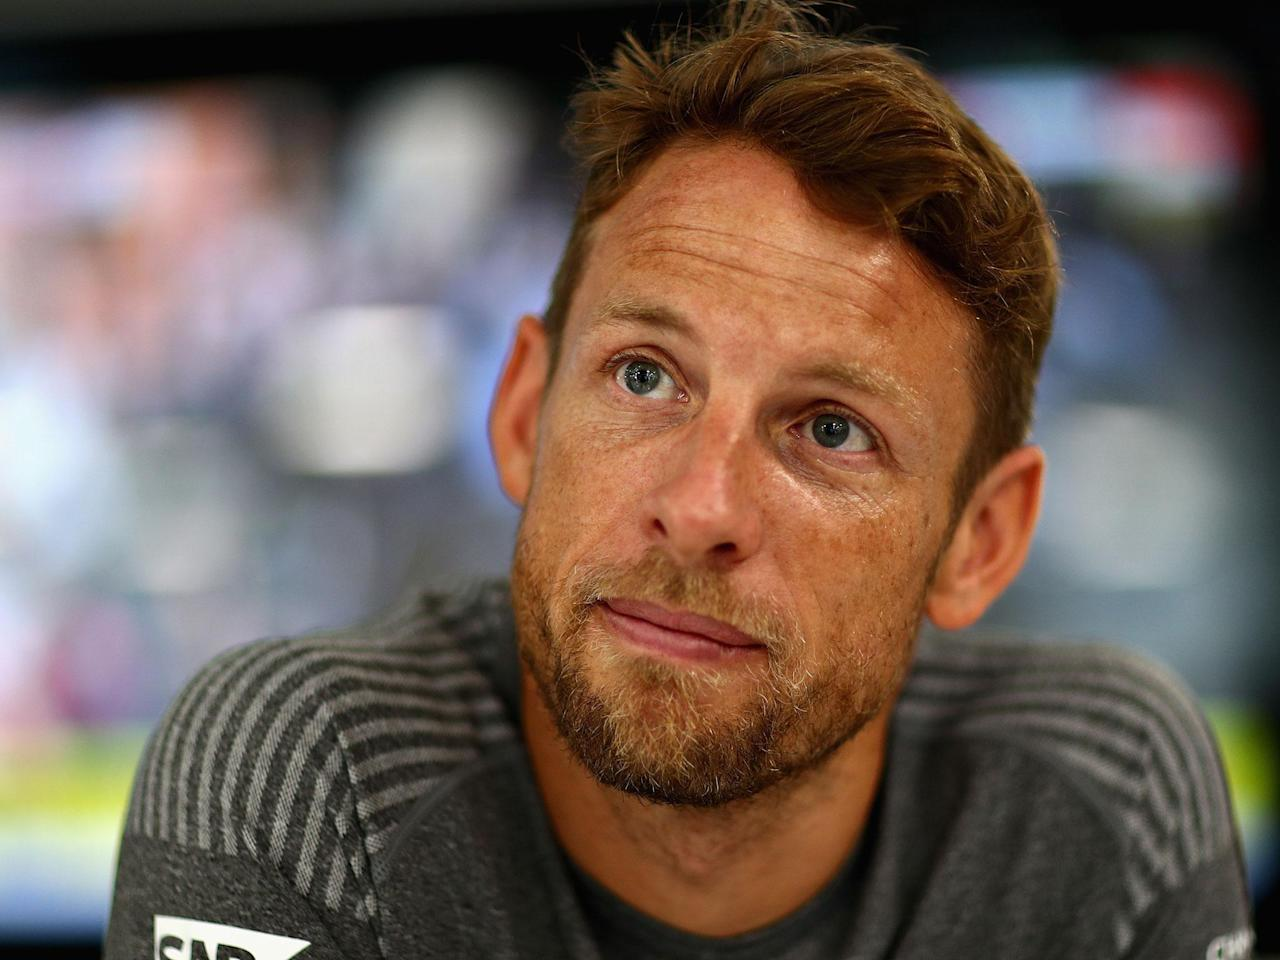 Jenson Button shows sombre and serious side as he prepares for F1 return on emotional weekend for motorsport